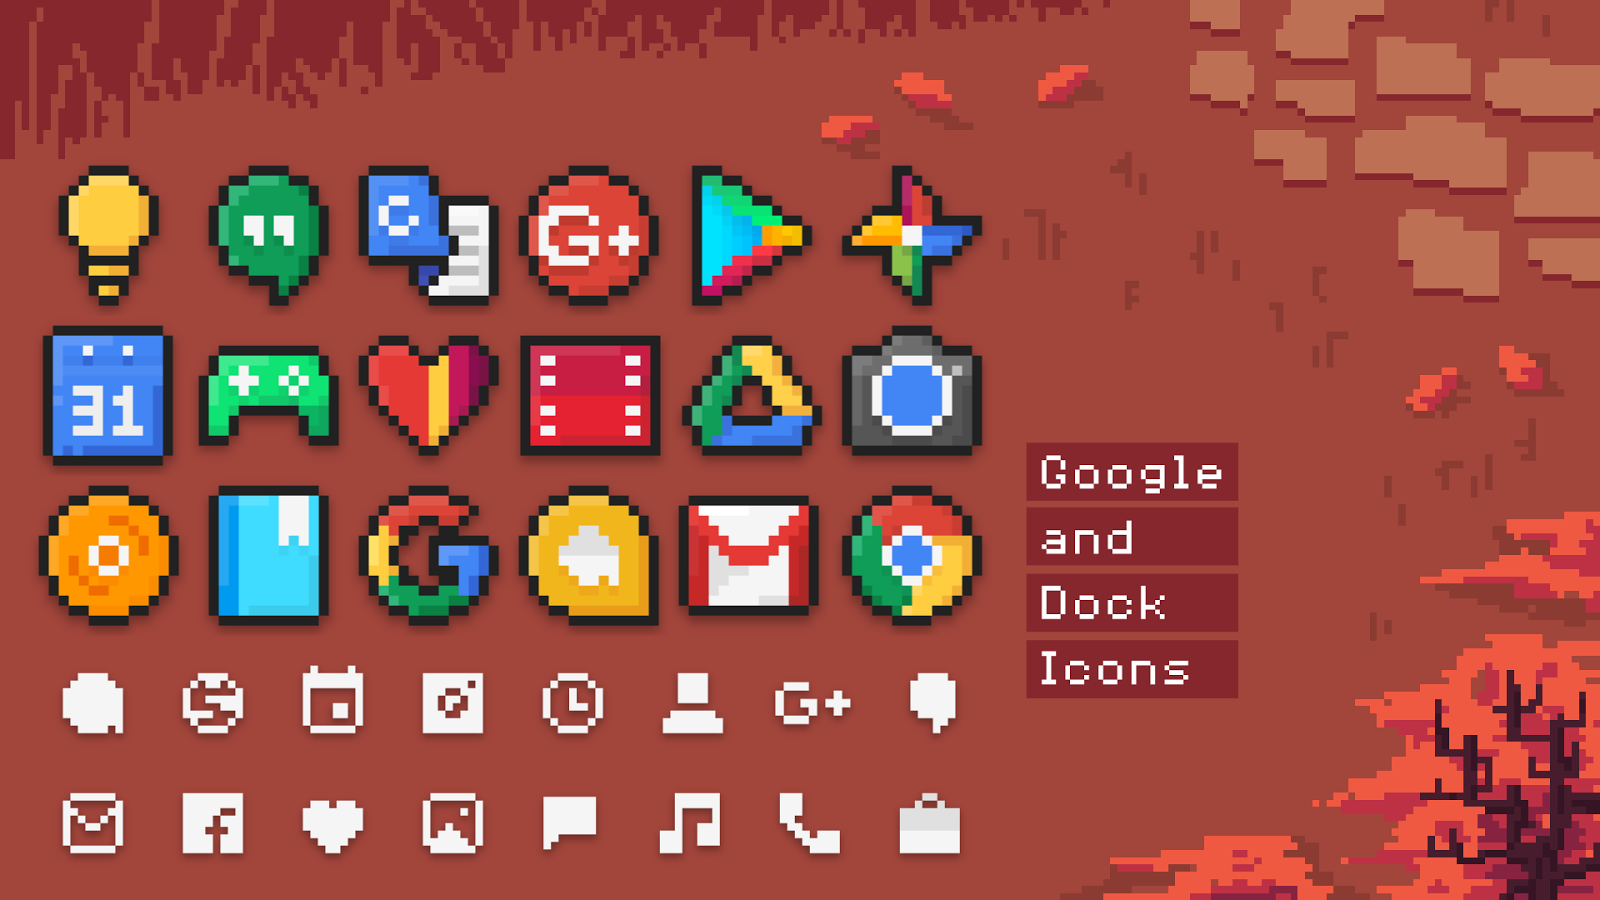 PixBit - Icon Pack Screenshot 0